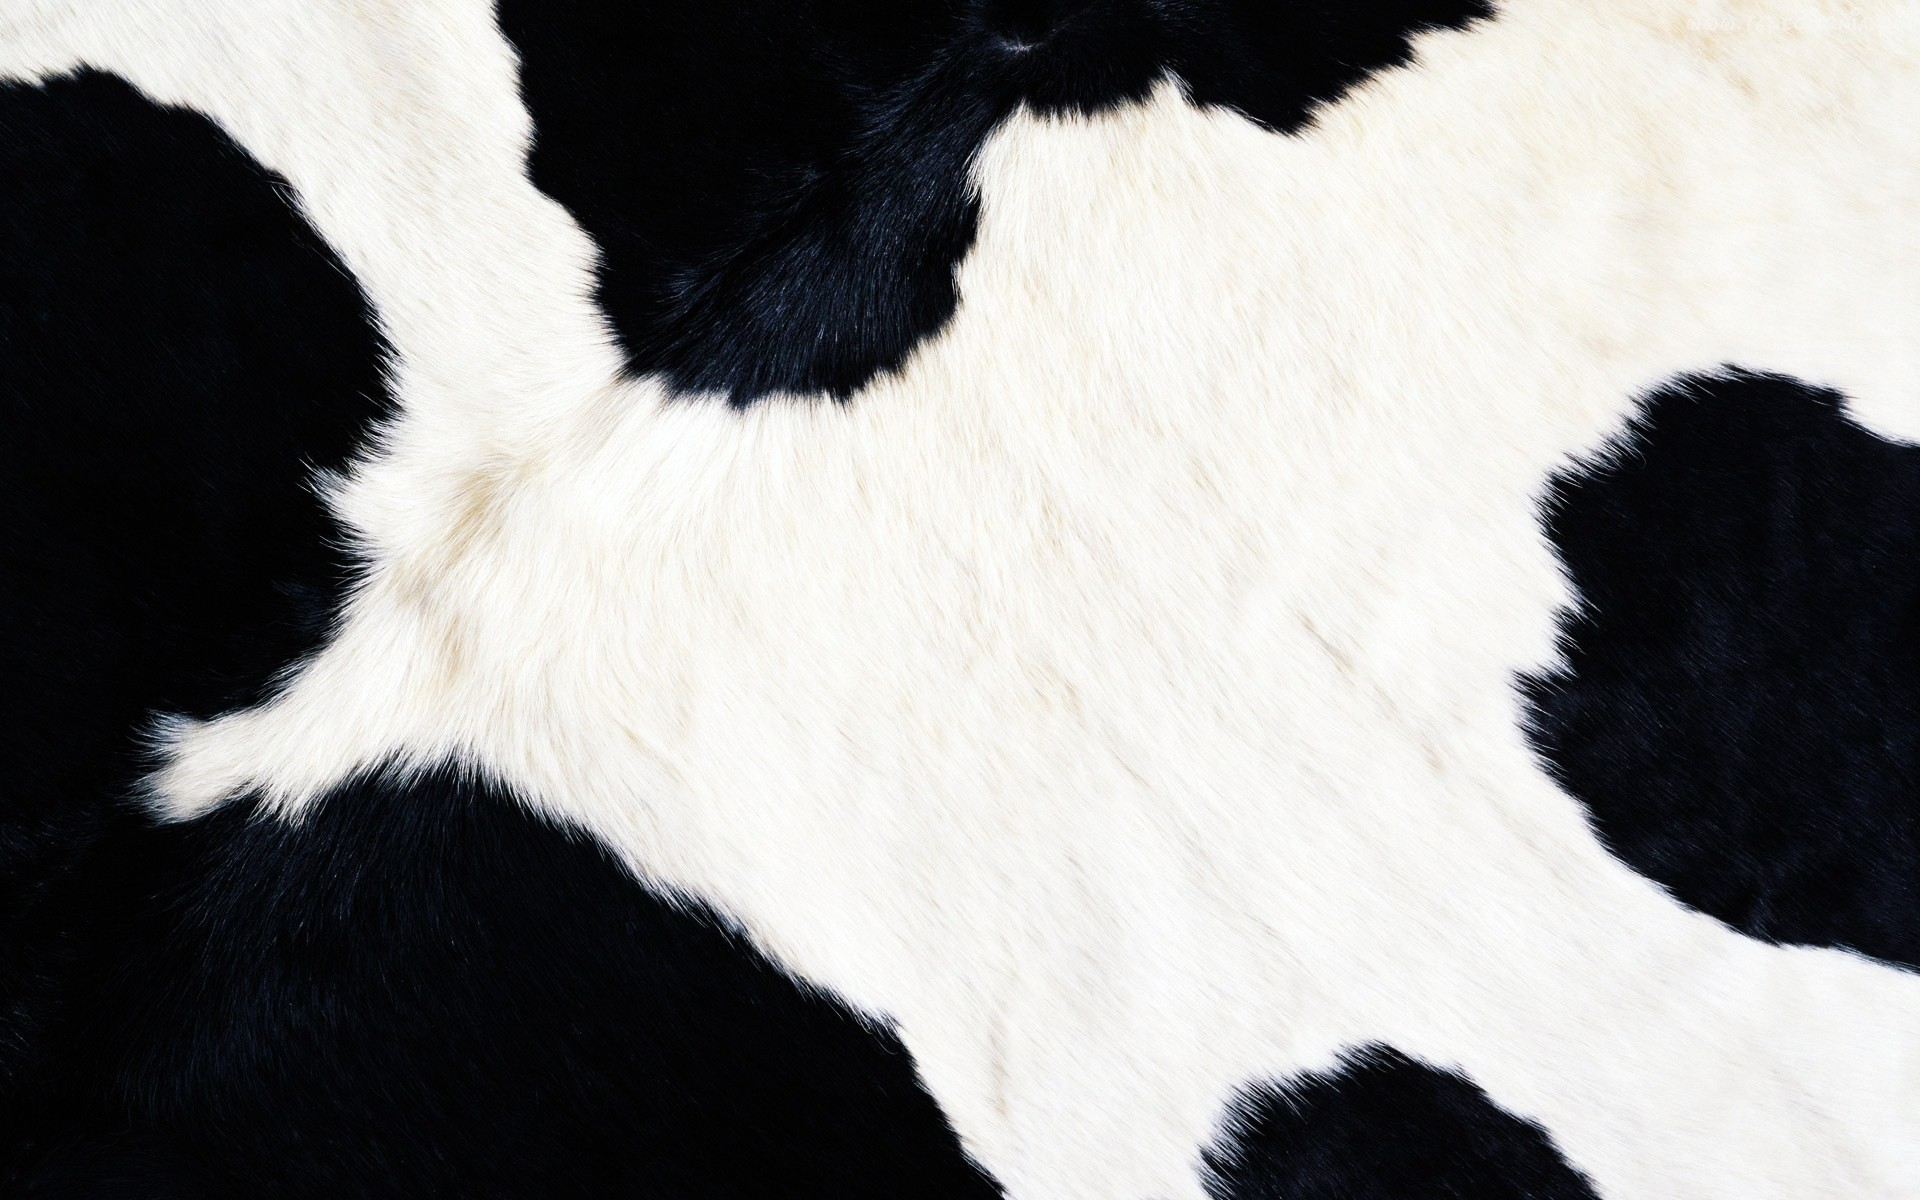 14728 download wallpaper Background, Cows screensavers and pictures for free